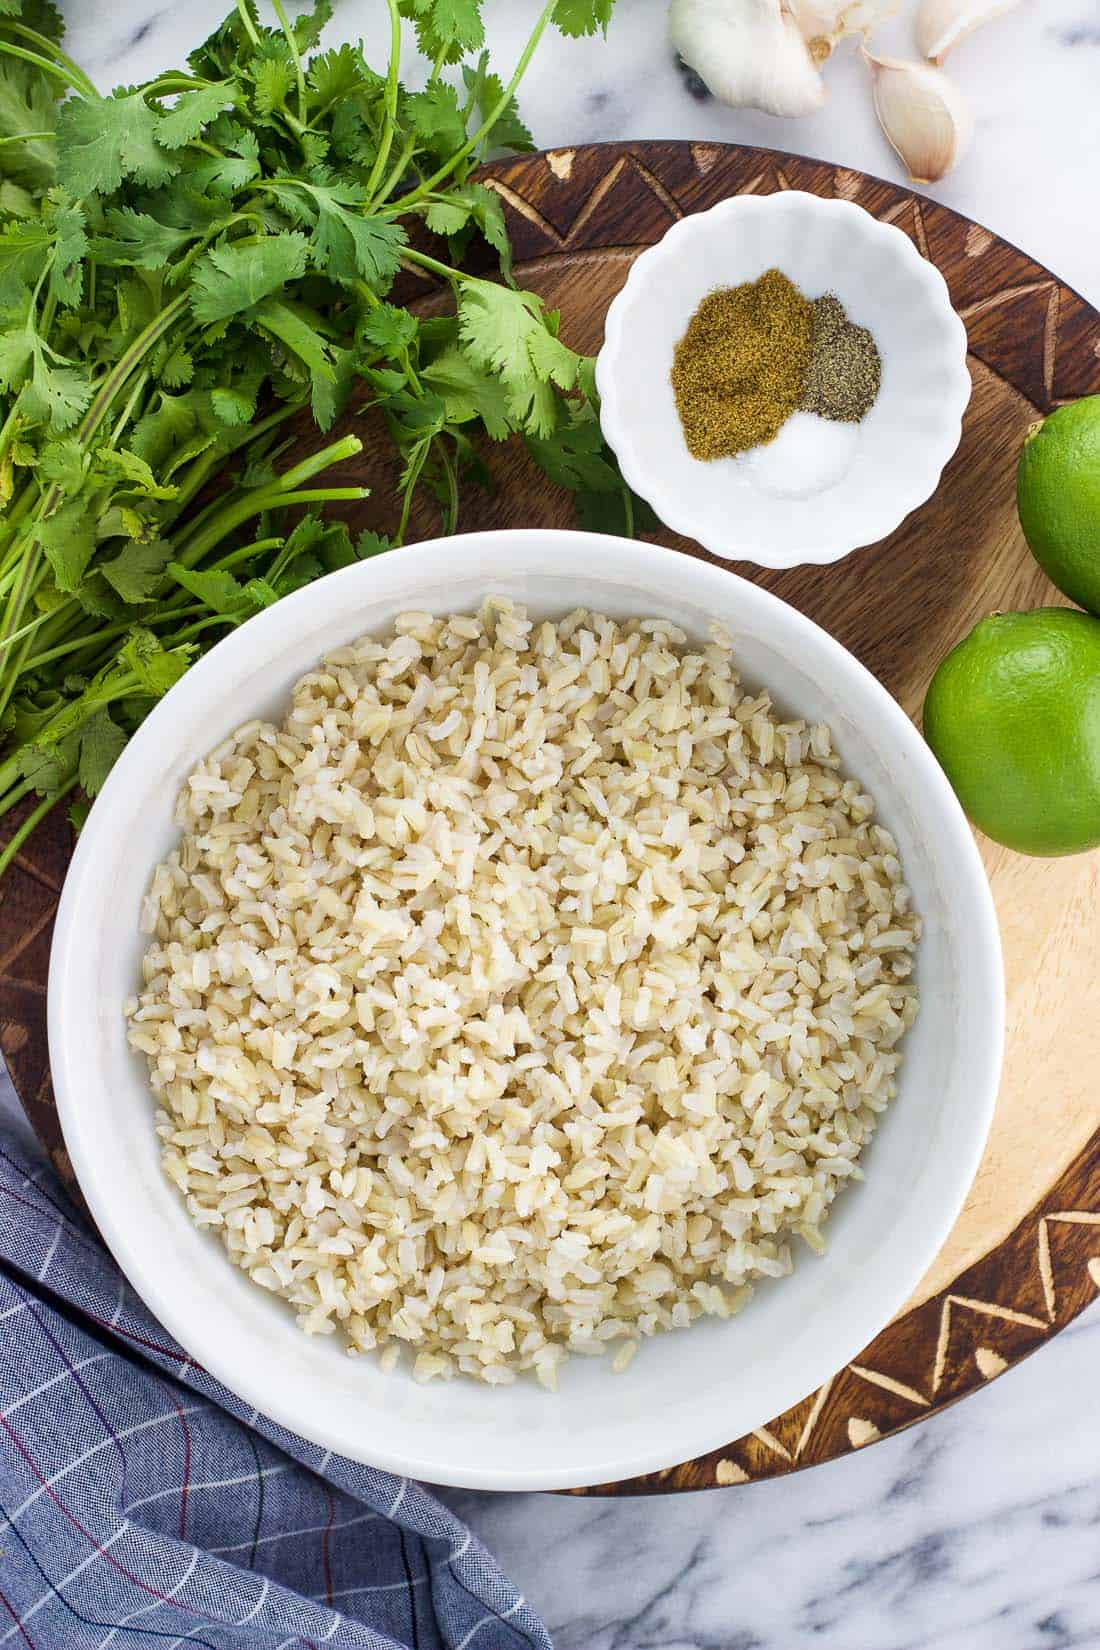 An overhead shot of the ingredients, including cooked rice, a bunch of cilantro, limes, and spices